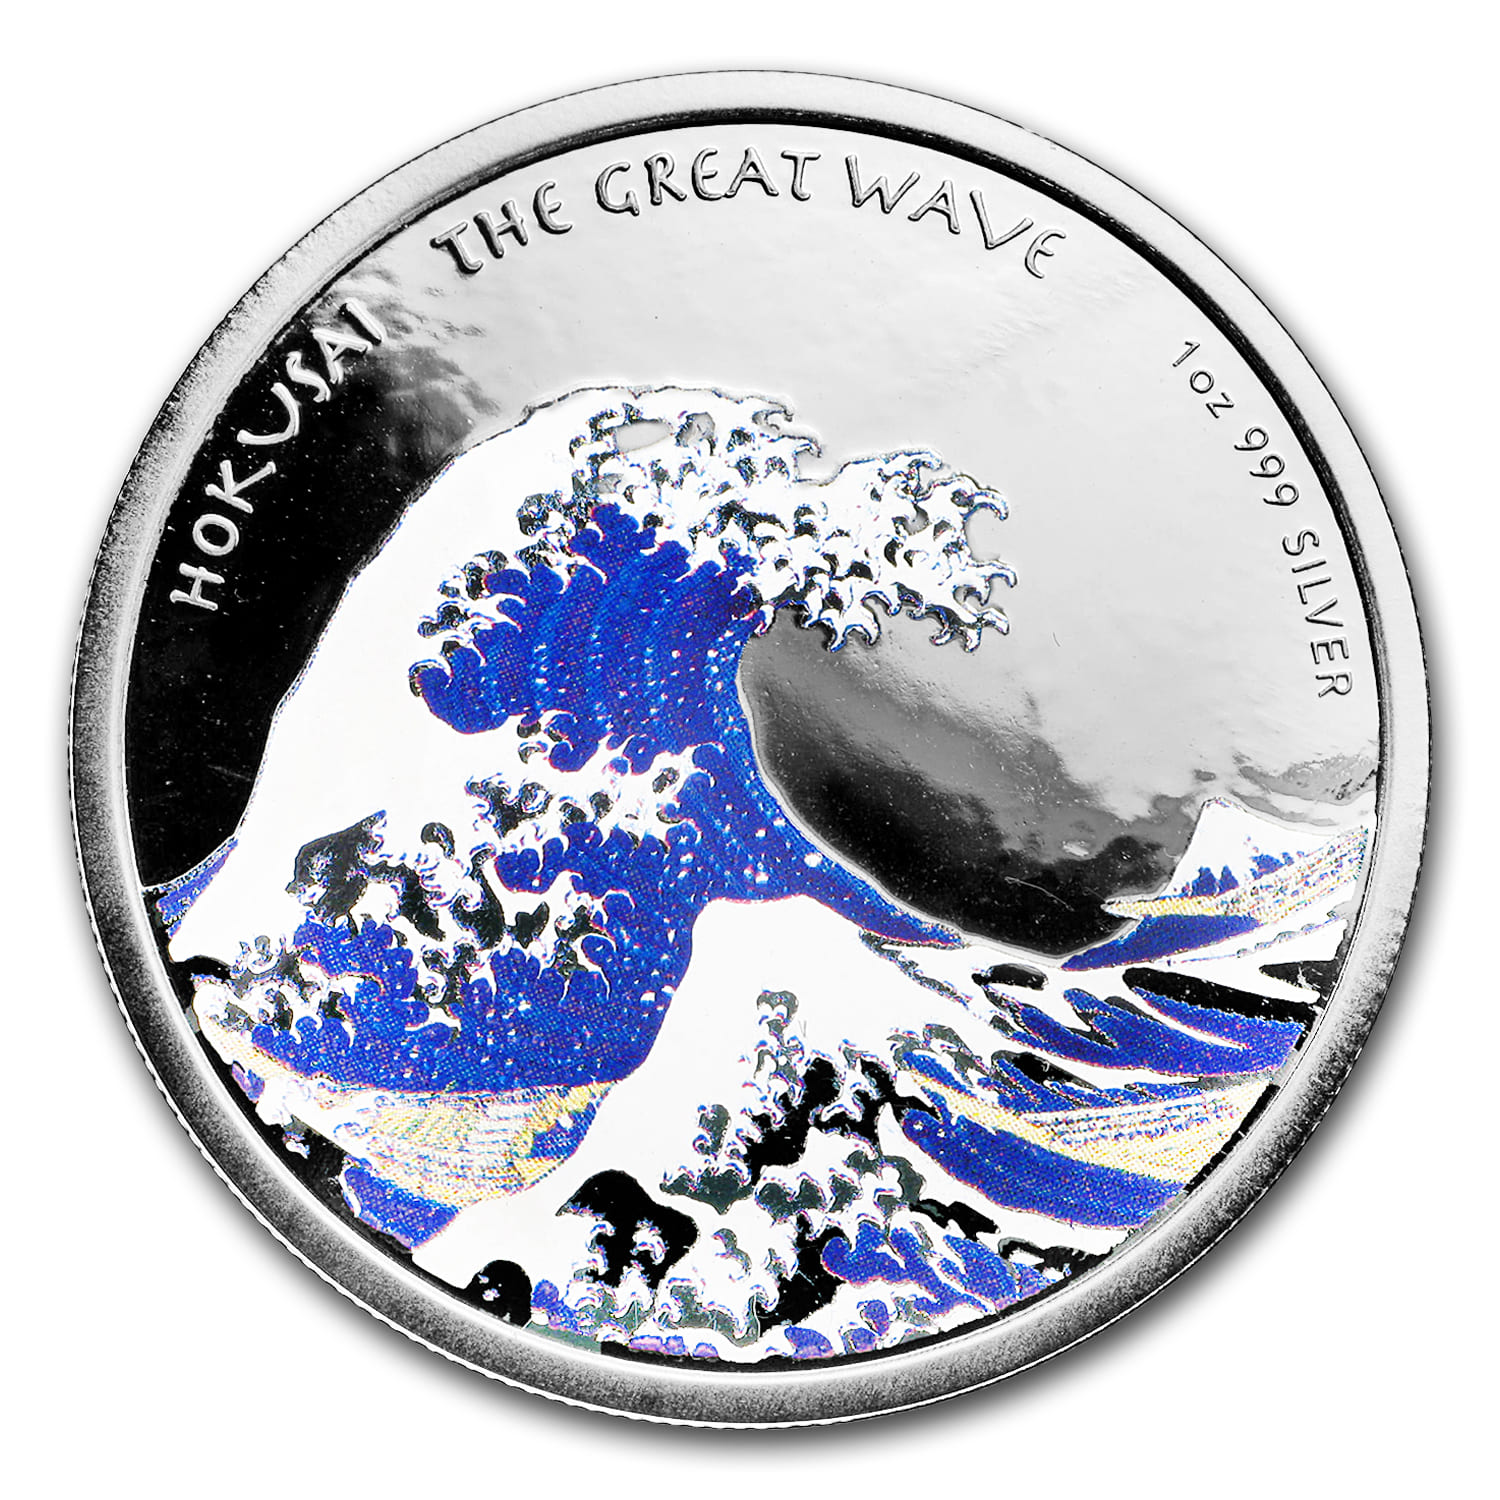 2017 Fiji Great Wave Silver Coin Colorized Silver